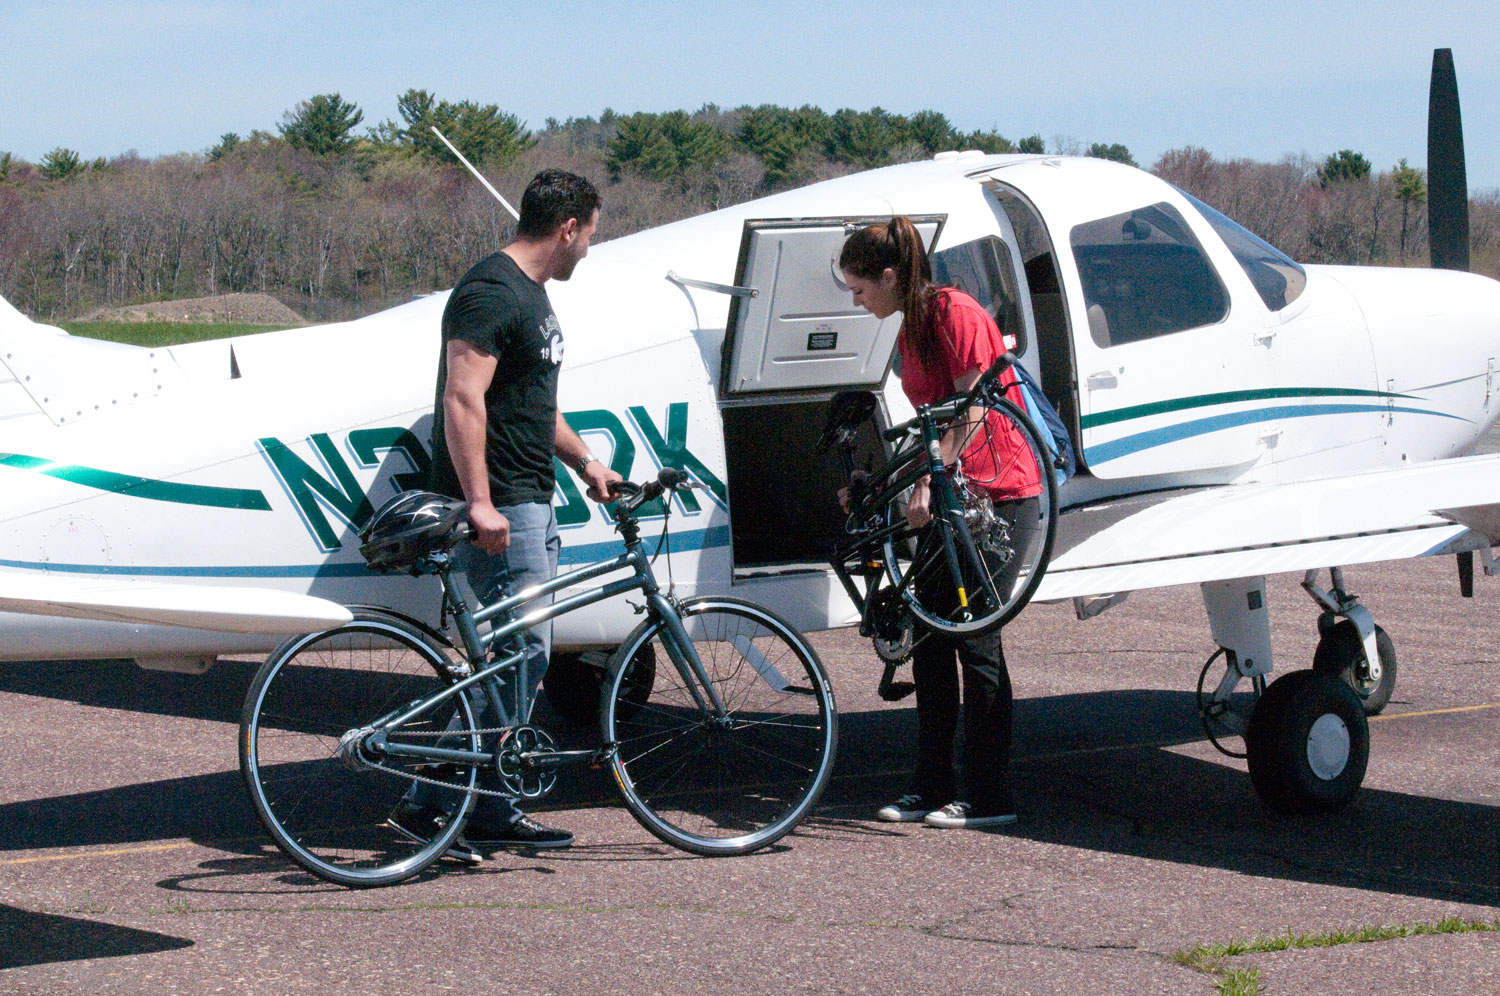 Man and Woman with Folding Bikes and Private Plane